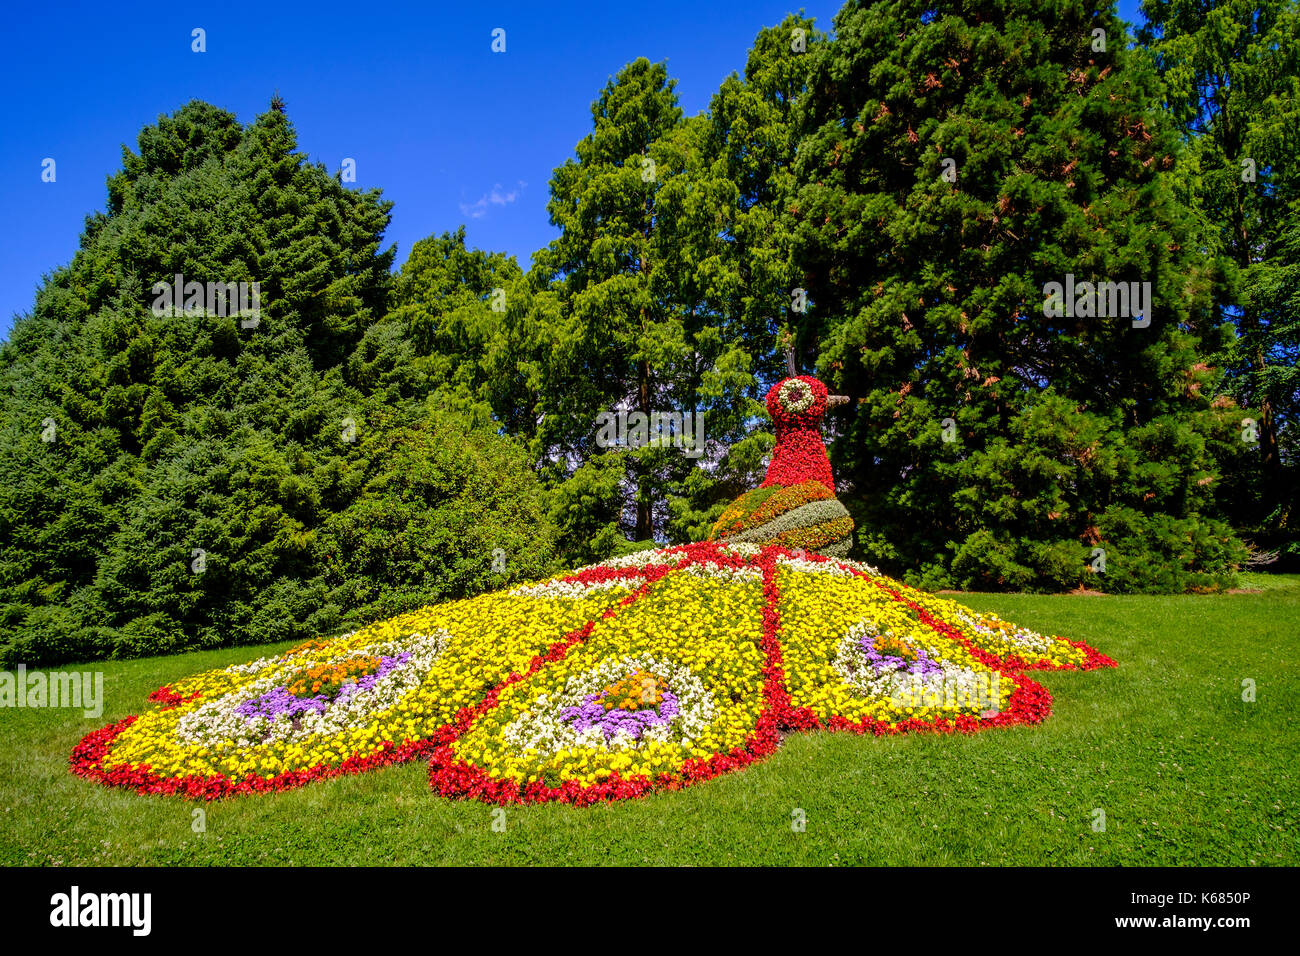 A colorful statue of a peacock is made by flowers - Stock Image